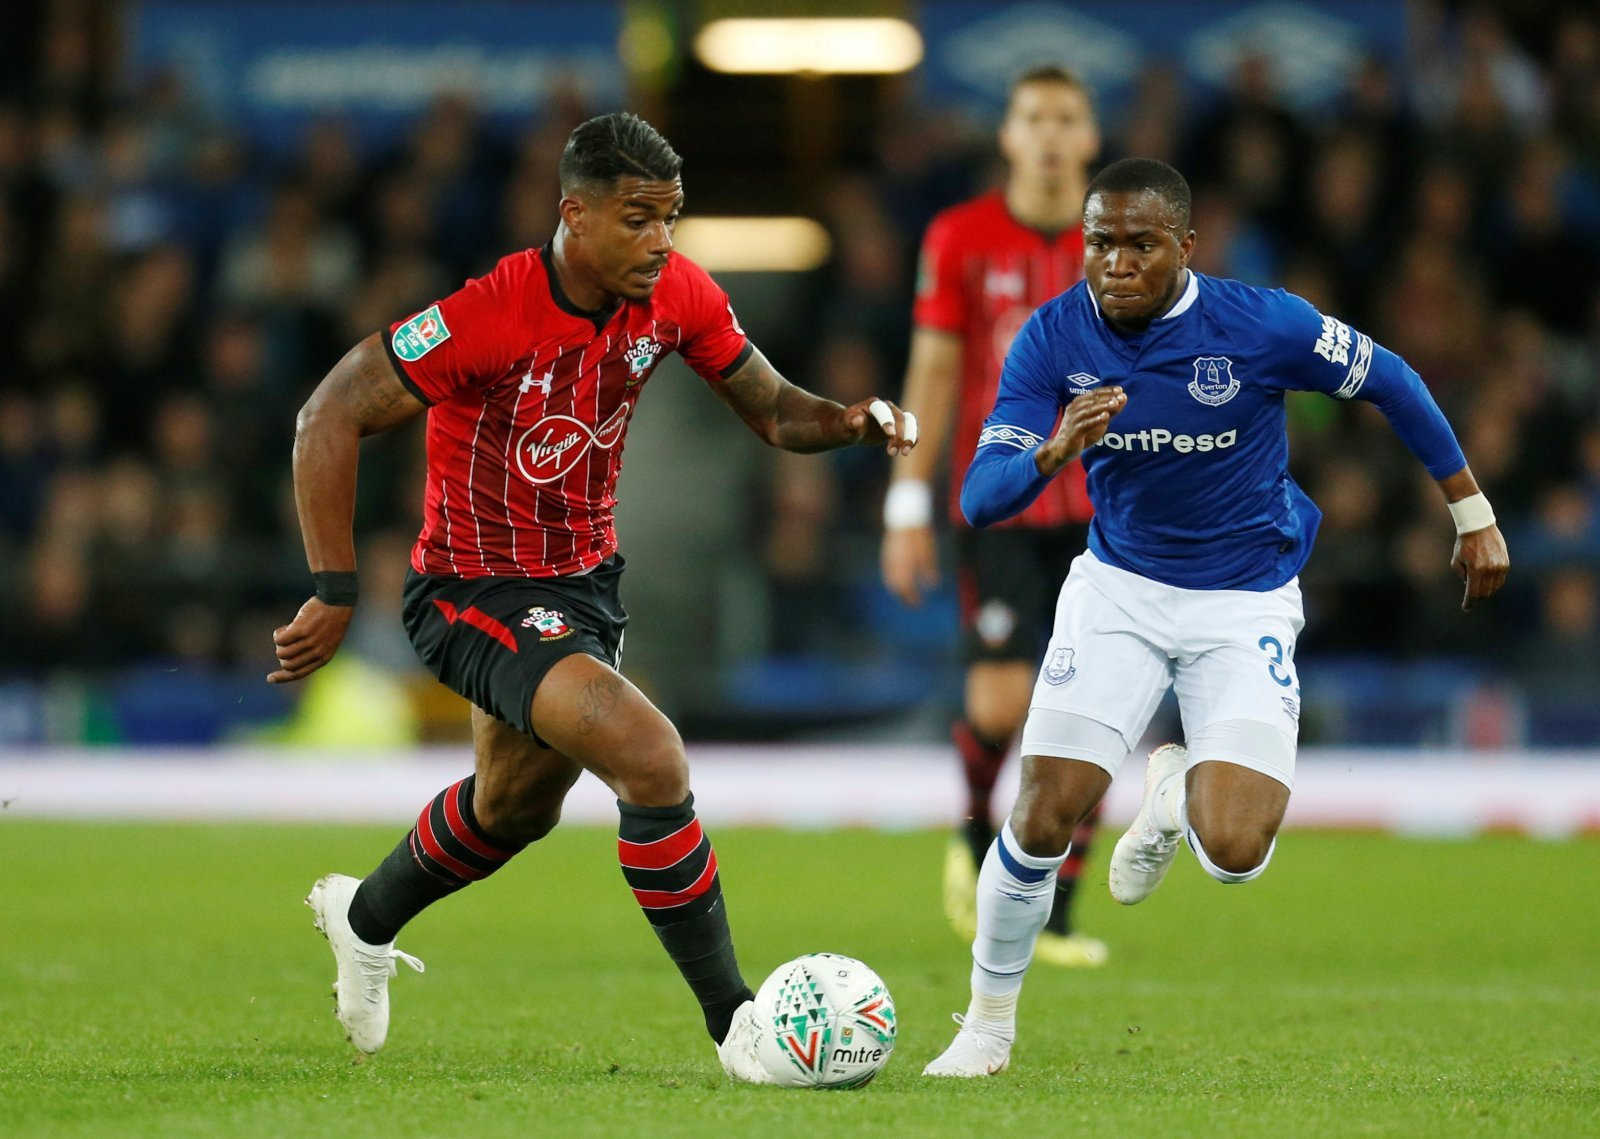 Landing Malcom would be great news for Everton, but very bad news for Ademola Lookman